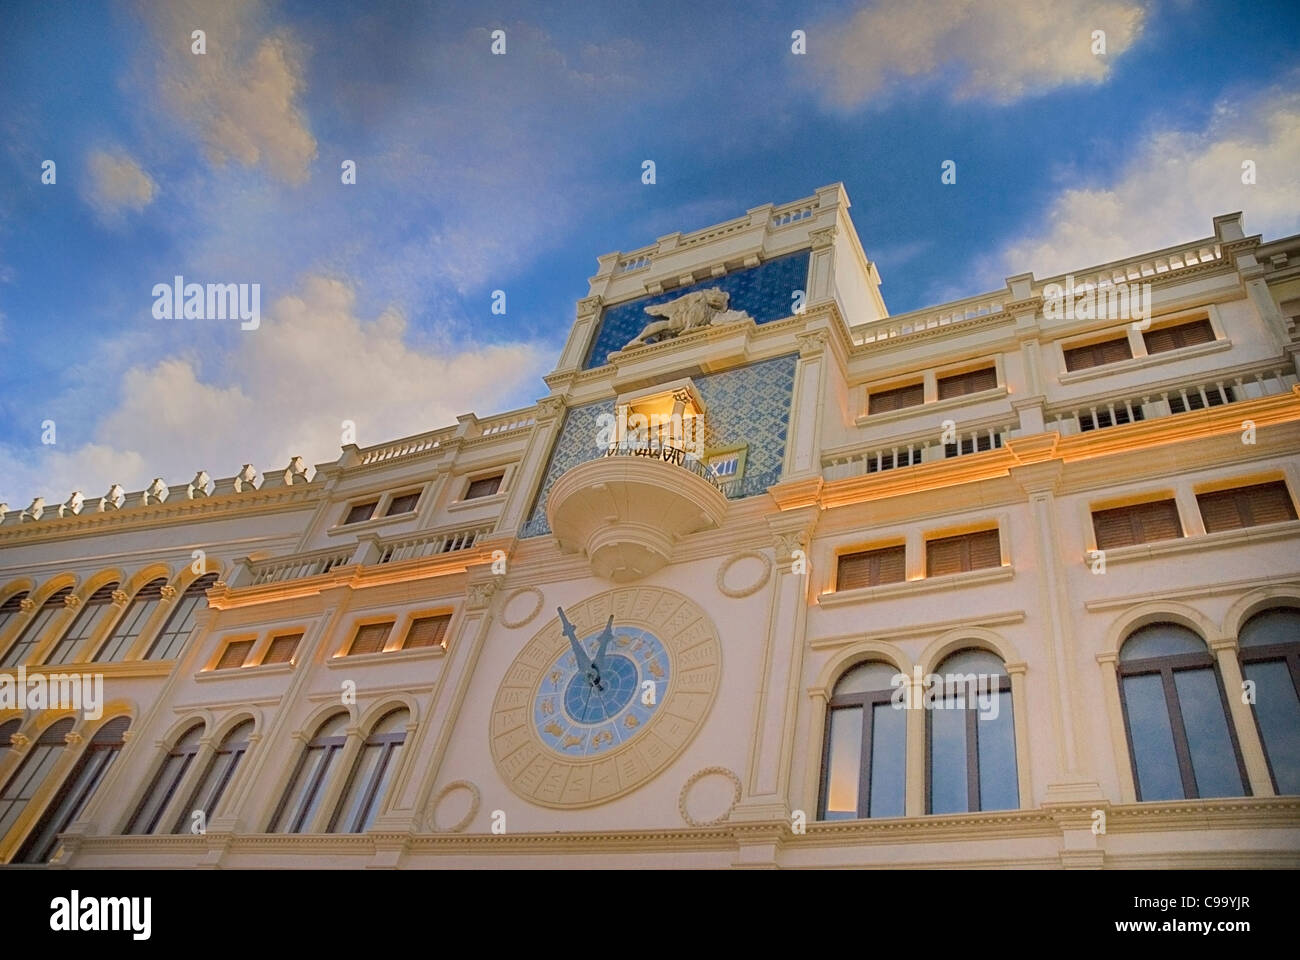 USA, Nevada, Las Vegas, The Strip, fake sky detail inside the Venetian hotel and casino. - Stock Image